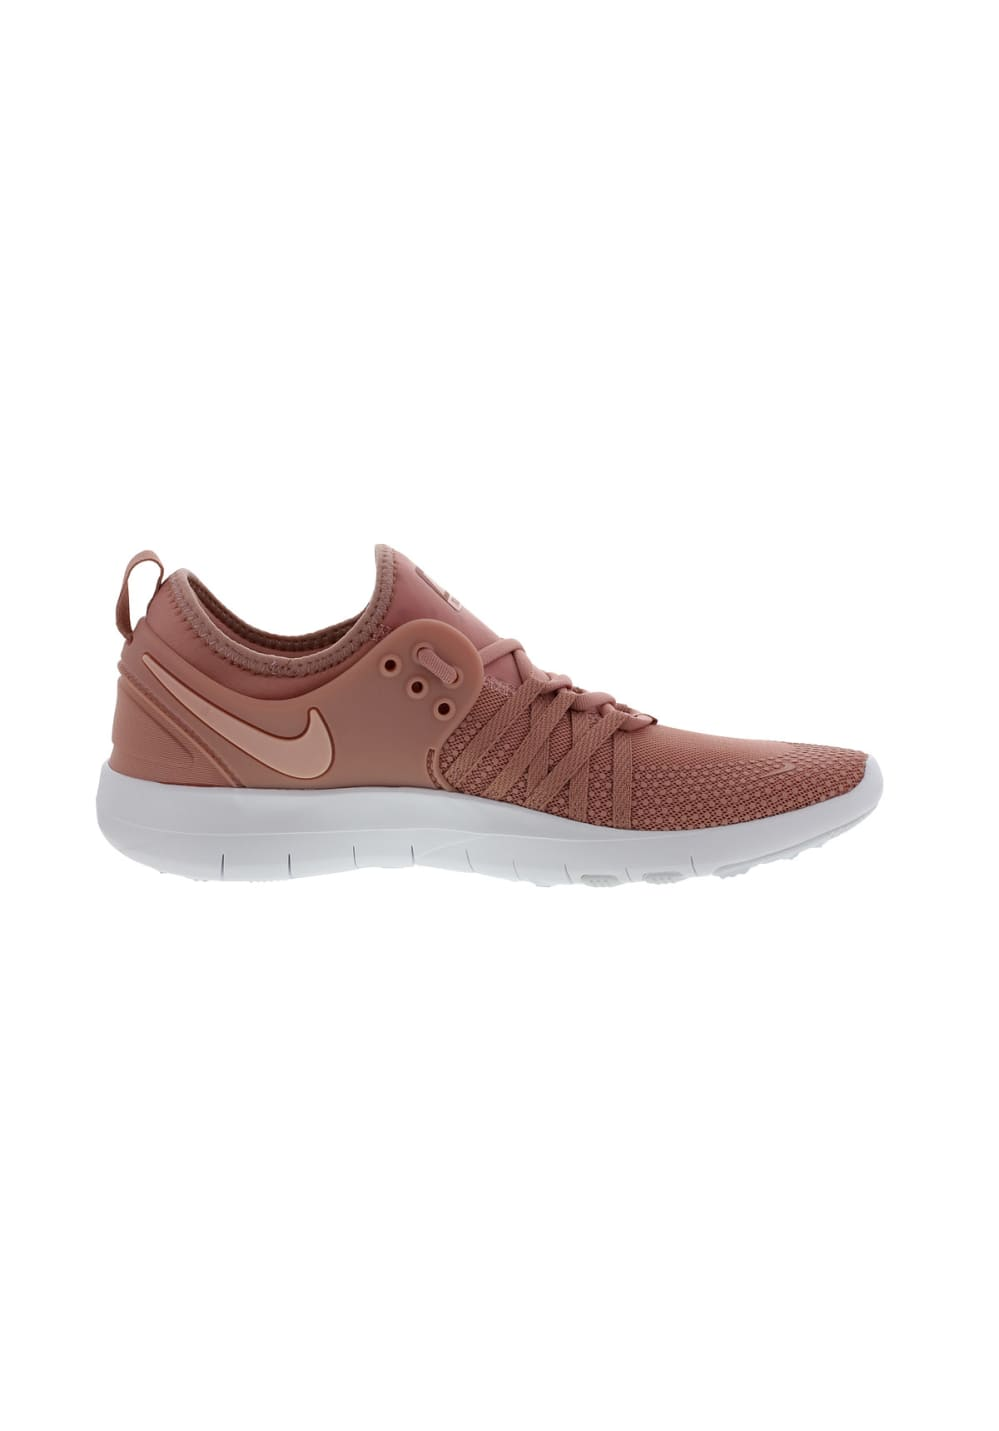 ebf2a2fb6c048 Next. -40%. This product is currently out of stock. Nike. Free Trainer 7 - Fitness  shoes for Women